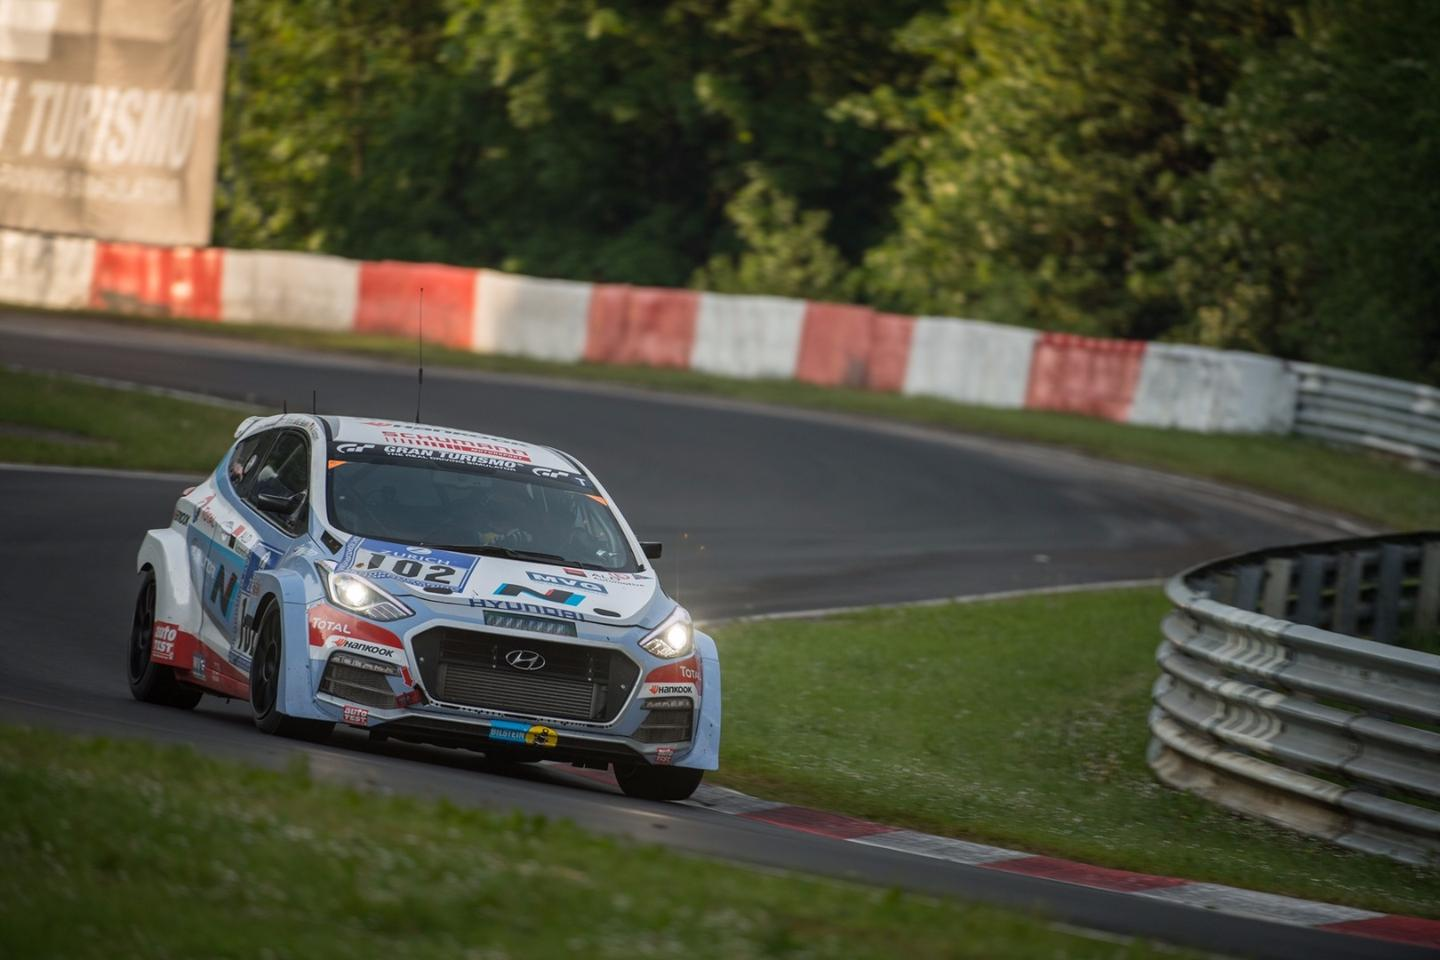 The race was the first motor-racing appearance for the i30 2.0 Turbo development vehicle